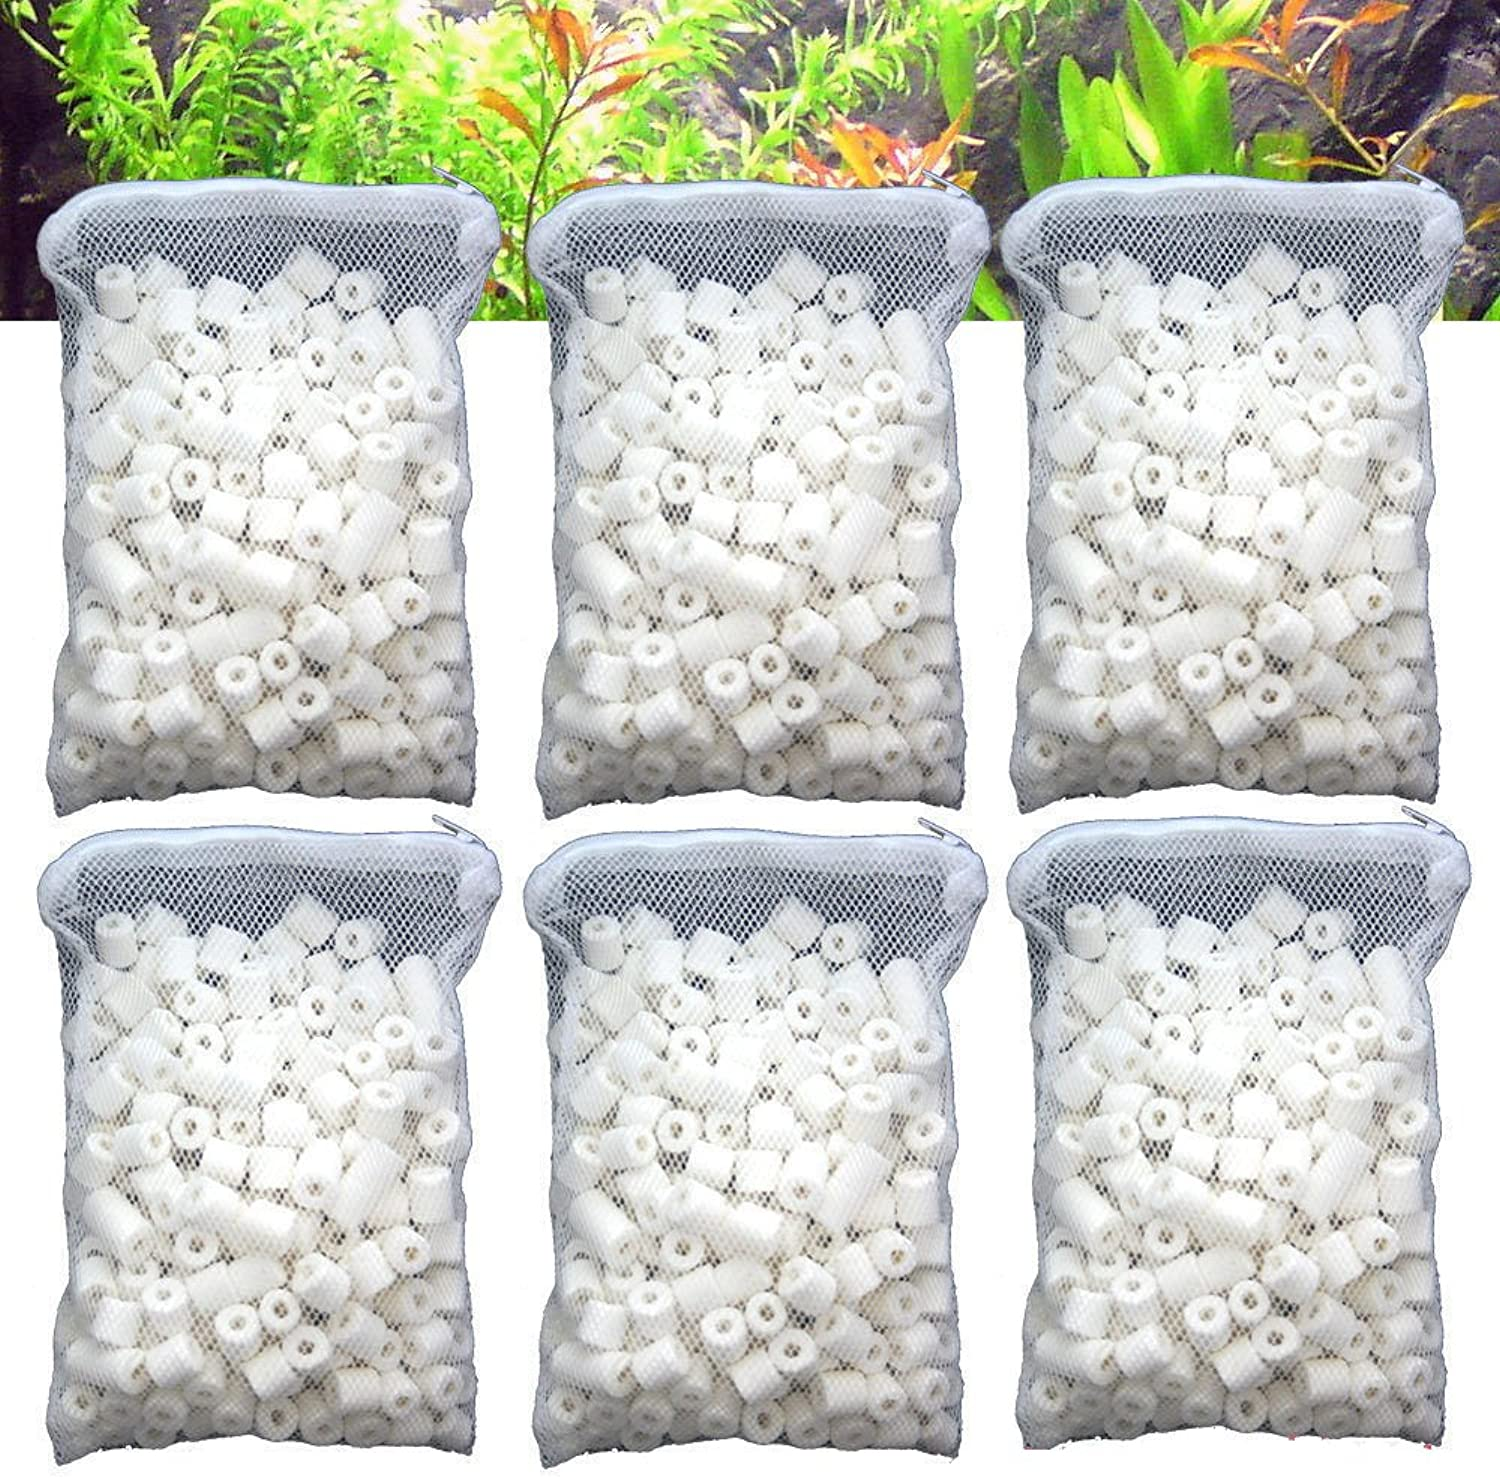 Aquapapa Aquarium Biological Bacteria House Ceramic Rings Filter Media 6 lbs Bagged for Pond Fish Tank Canister Filter